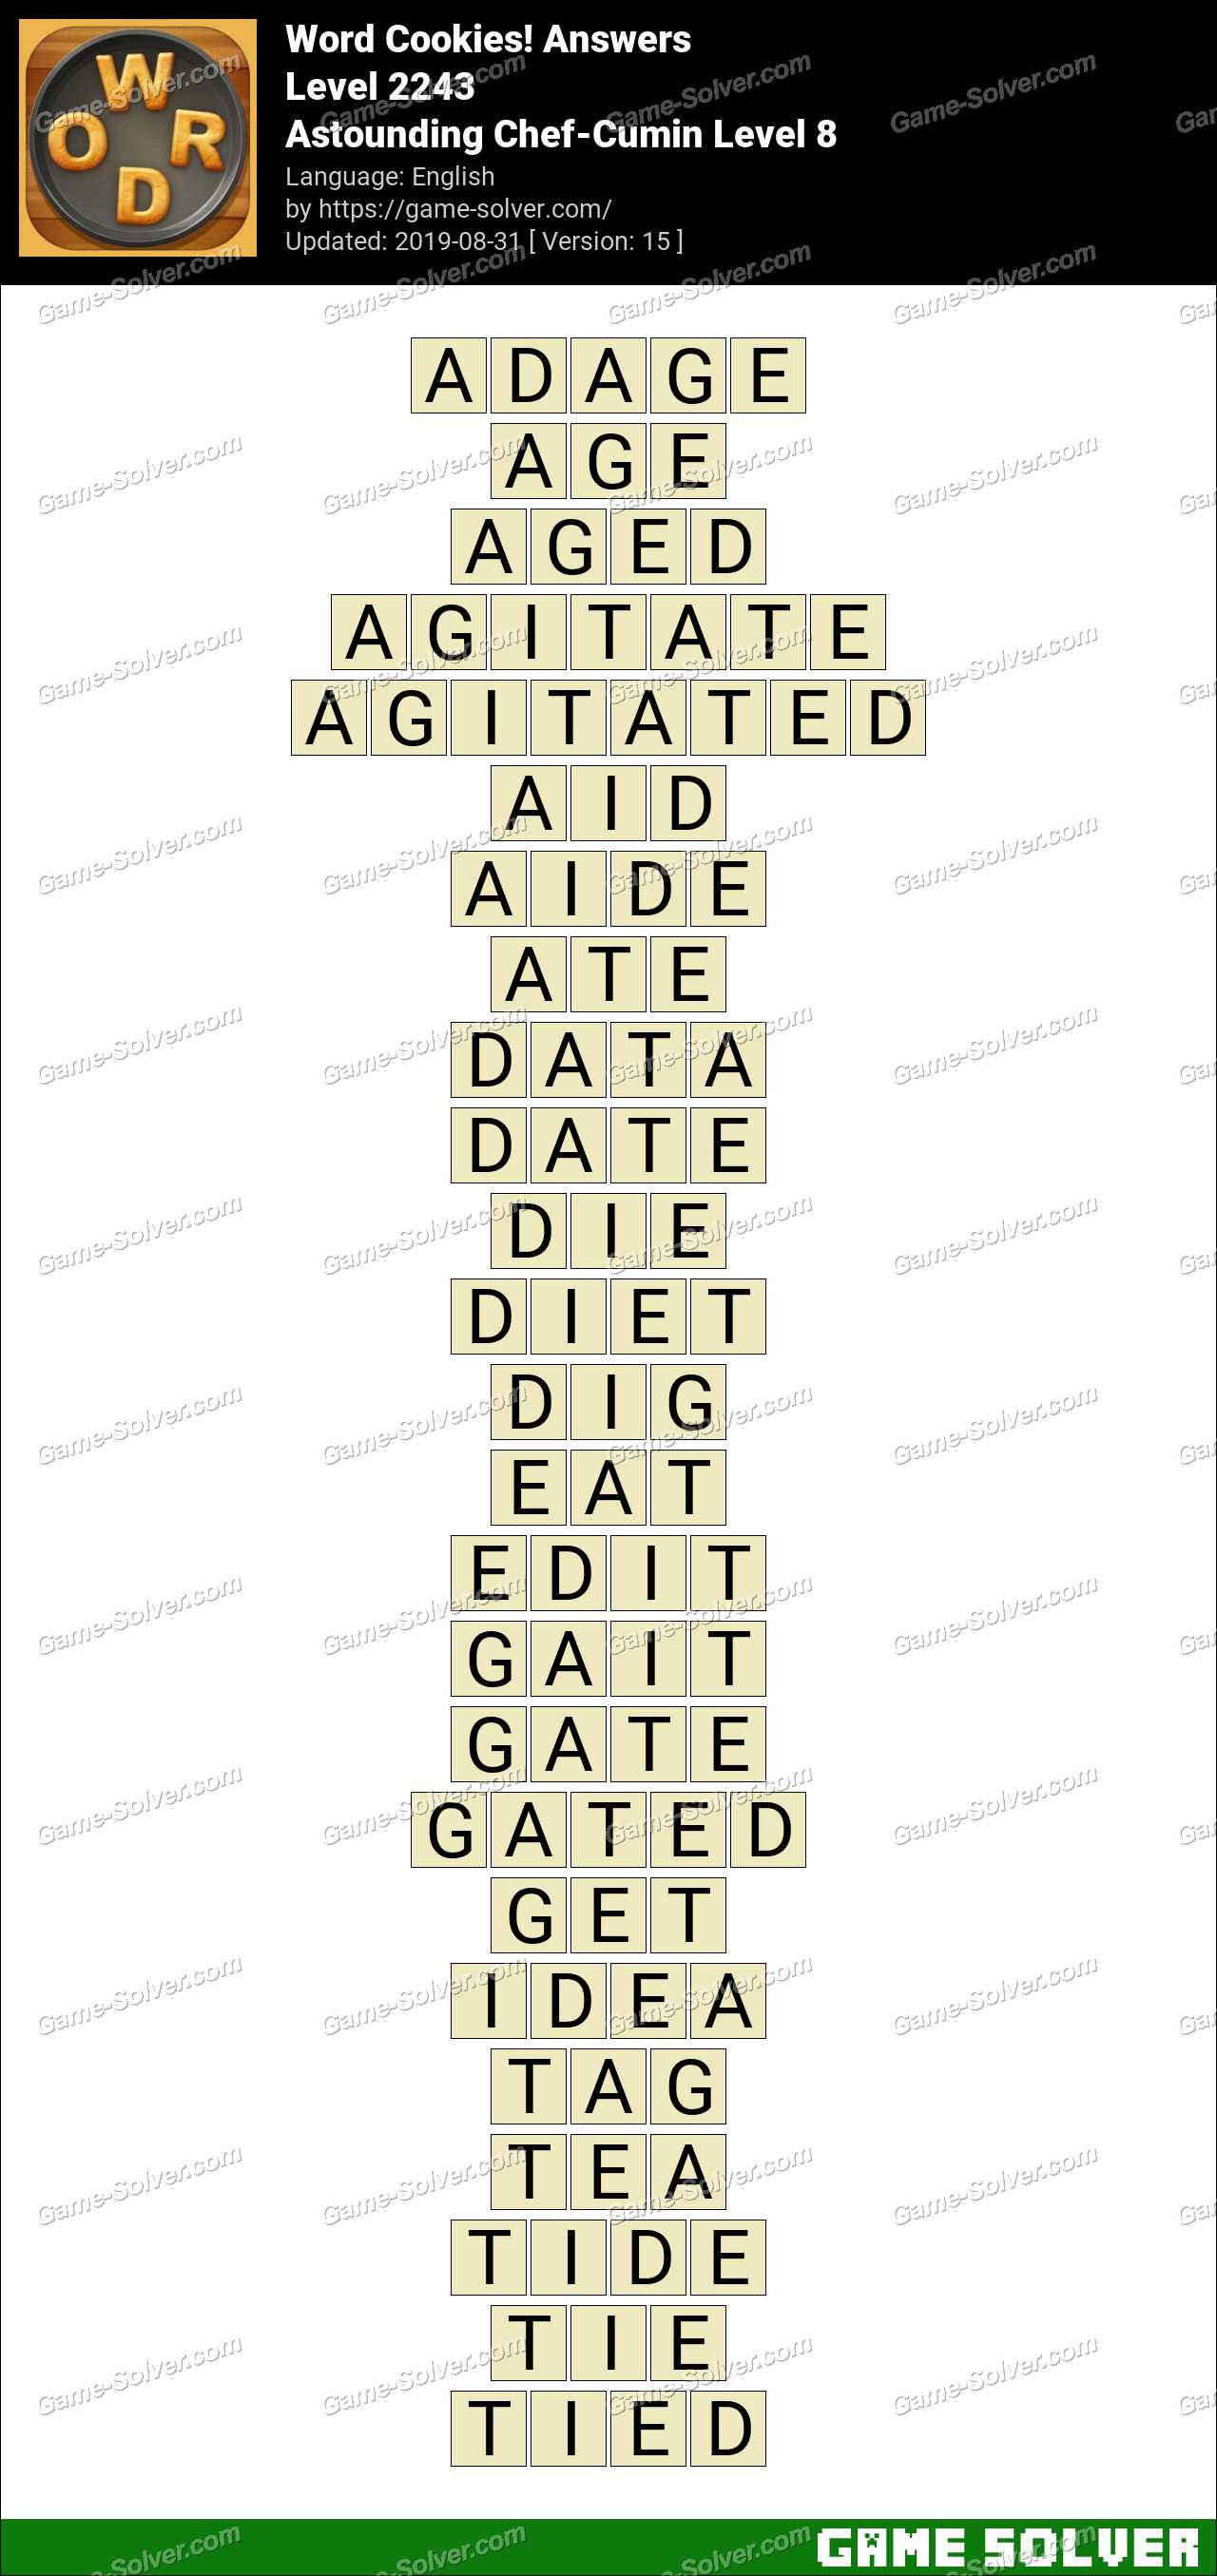 Word Cookies Astounding Chef-Cumin Level 8 Answers